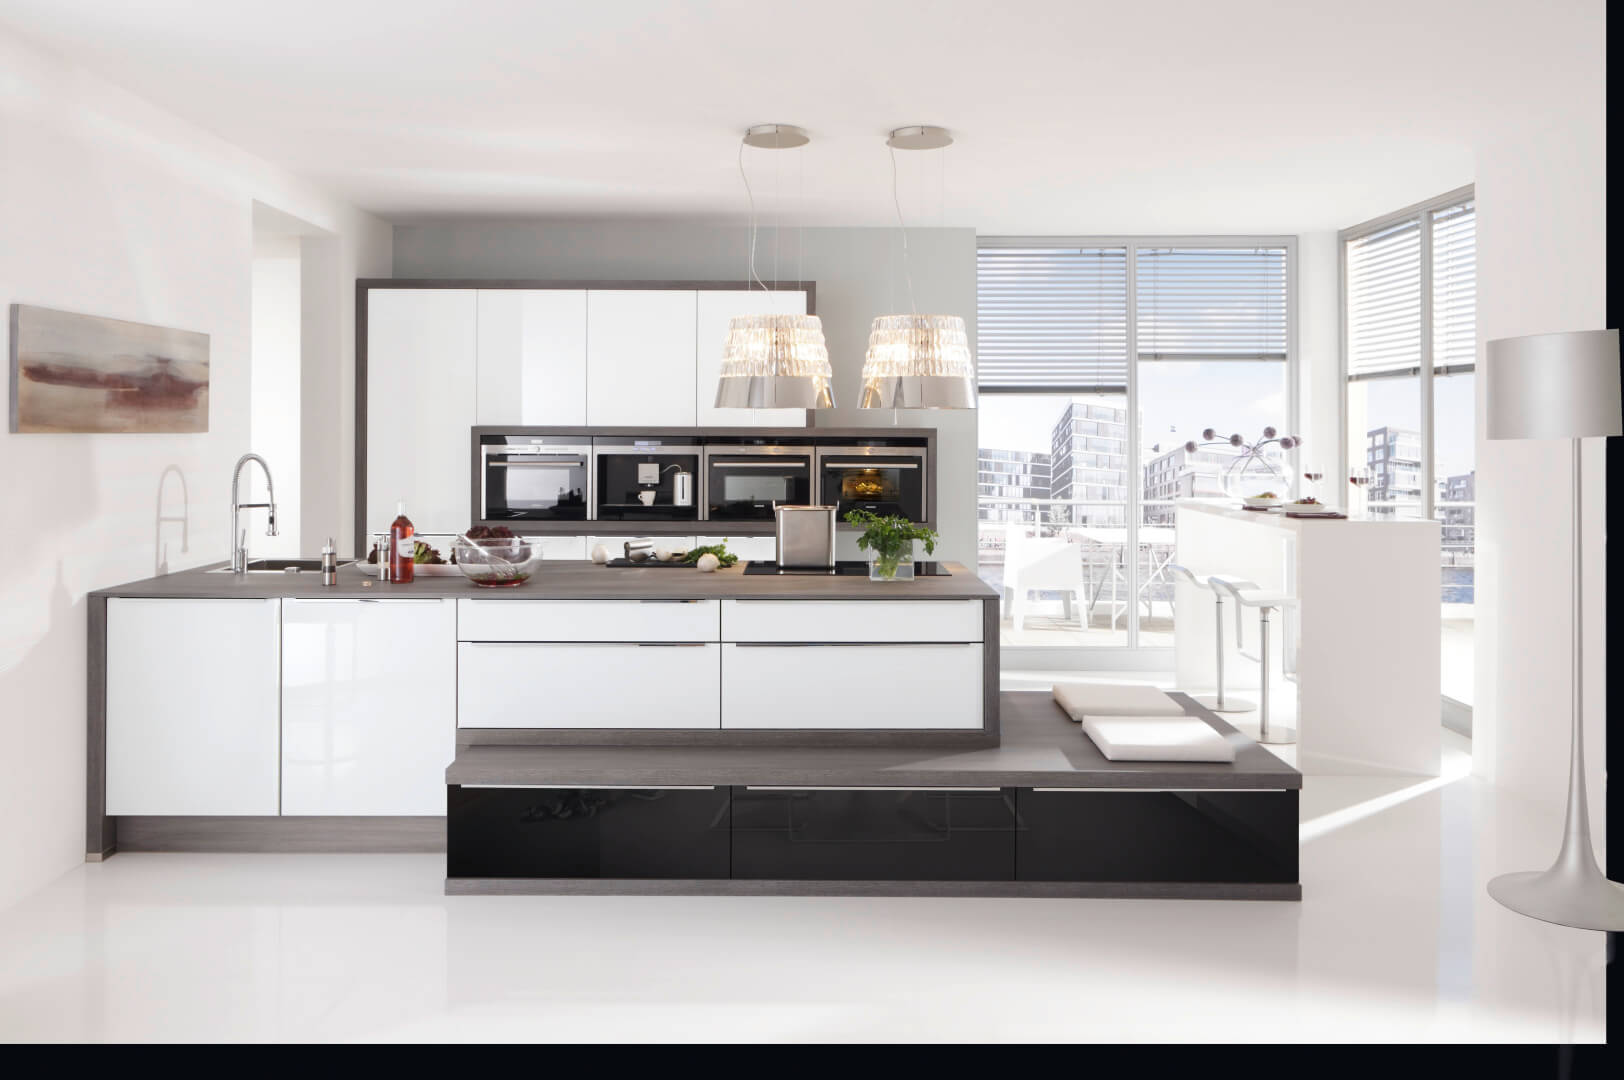 Nolte-Kitchens-Glass-Tech-Gallery13